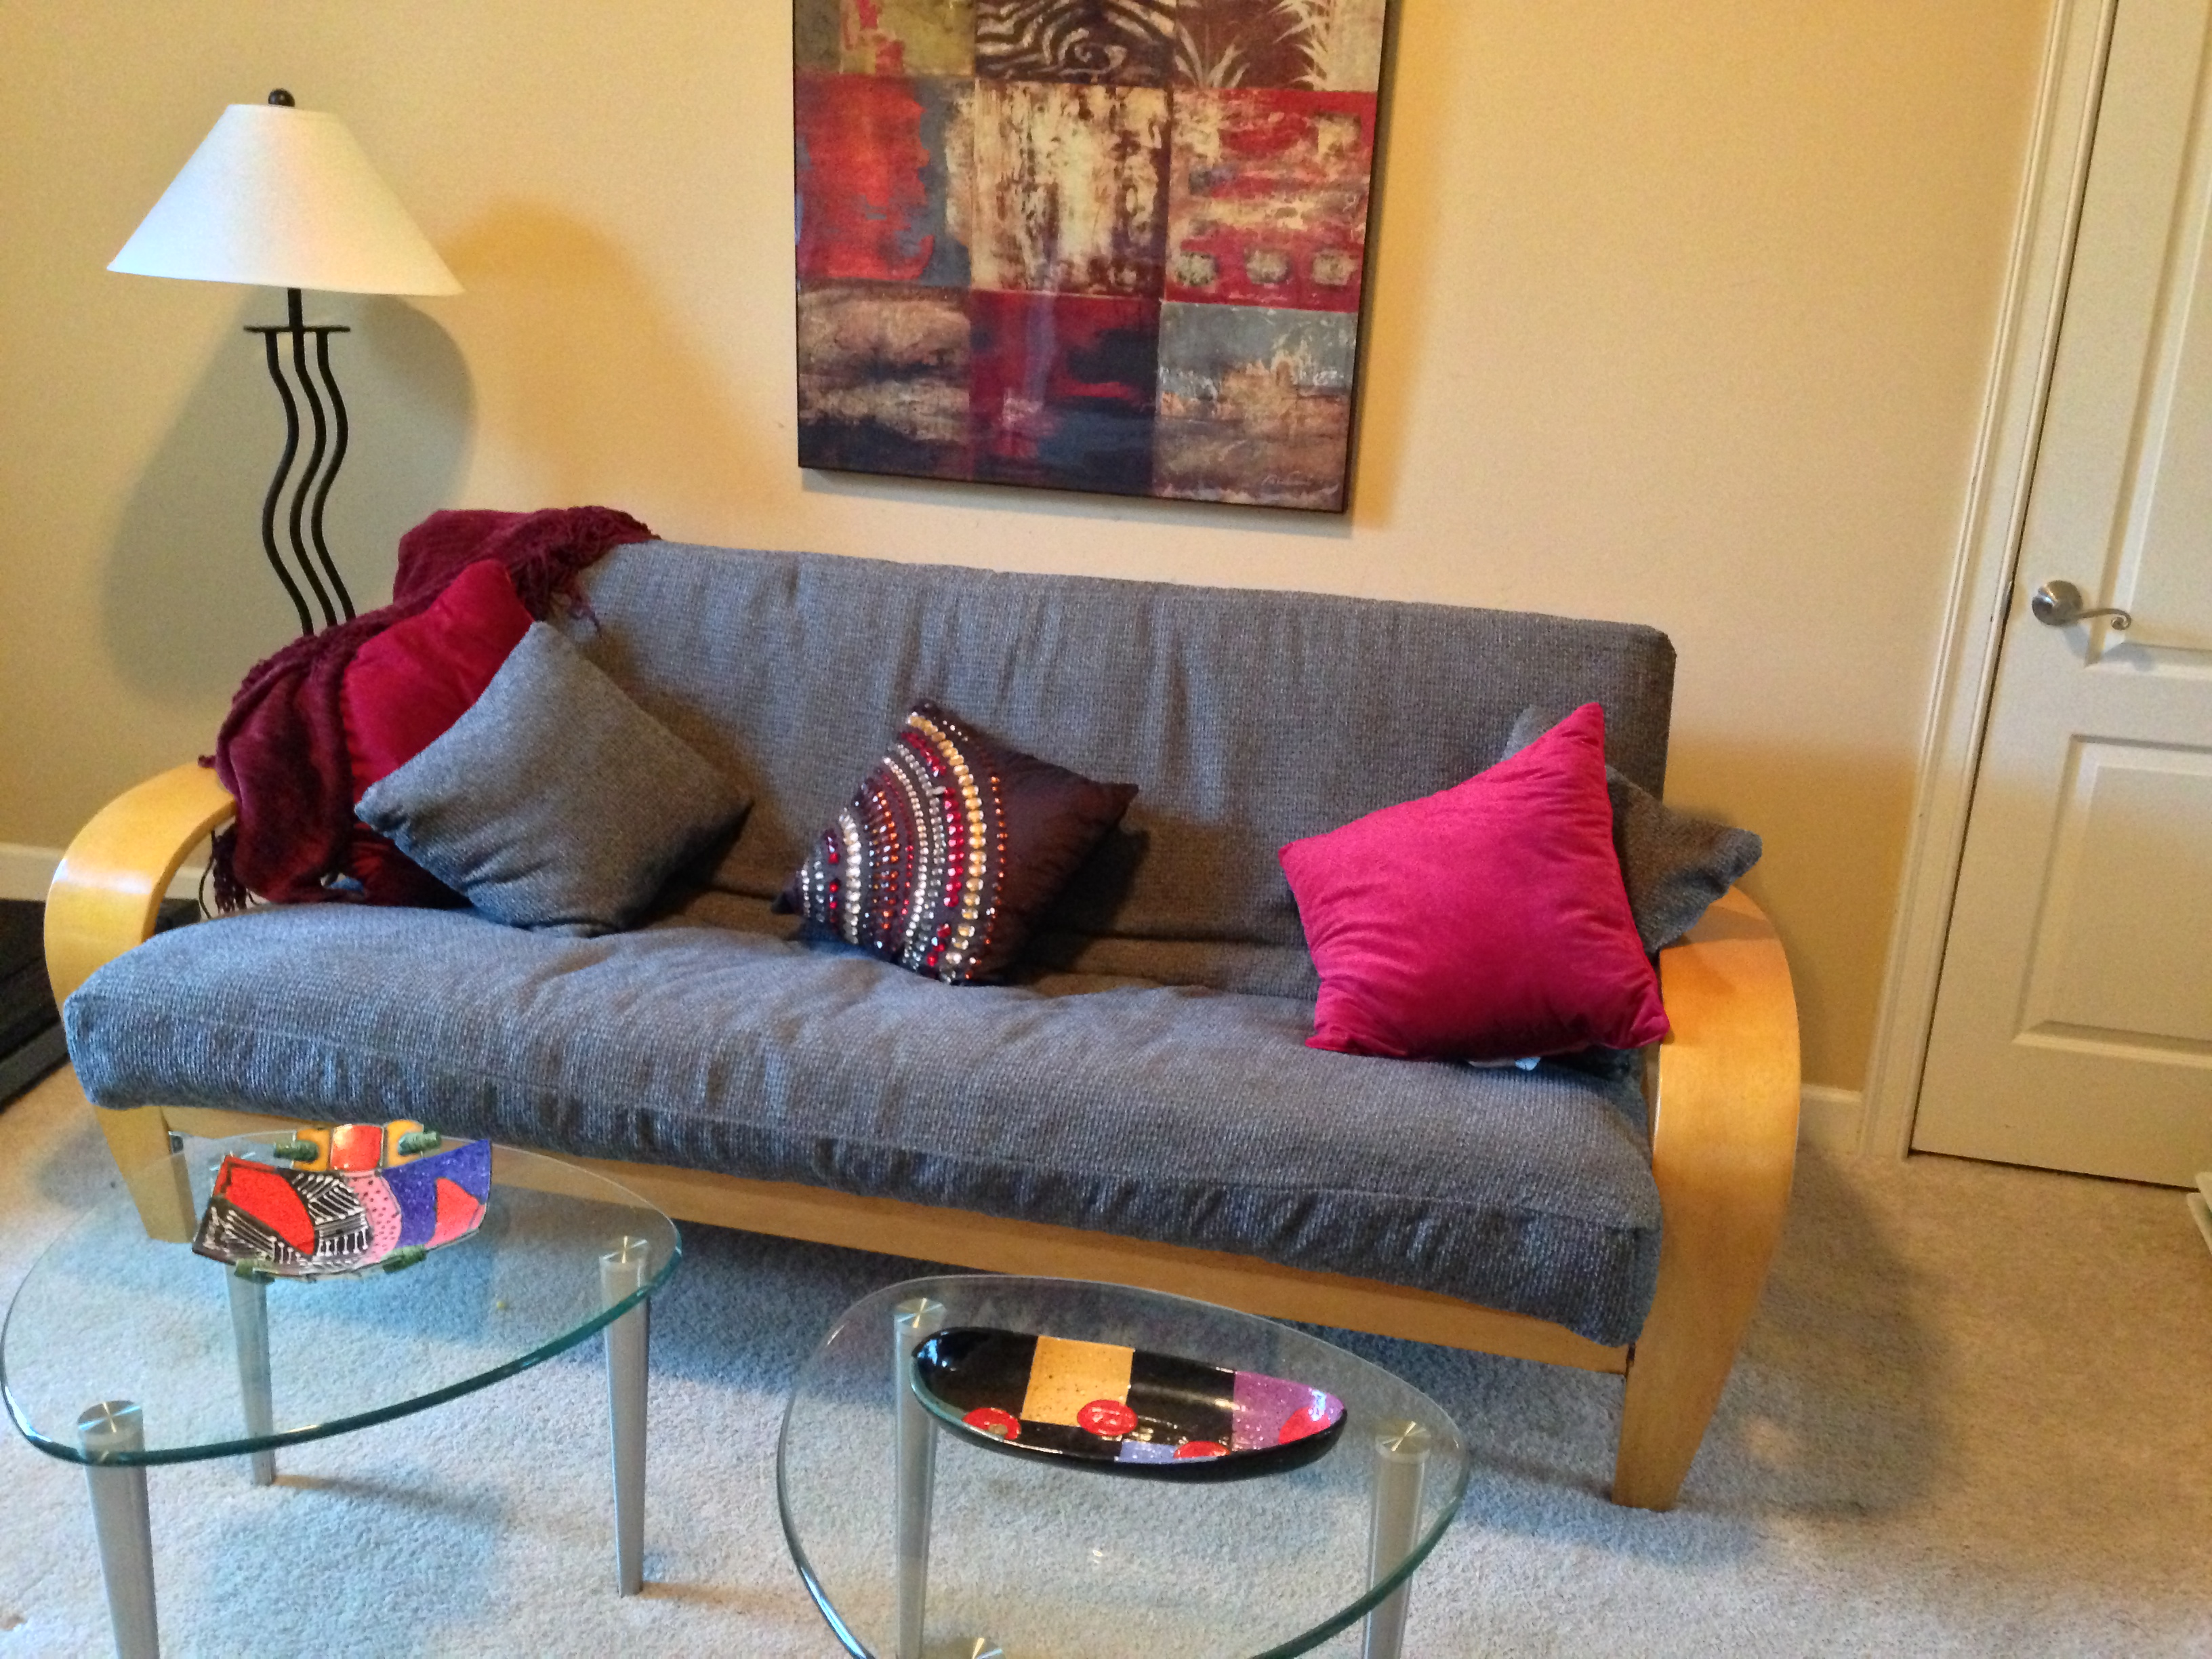 fall is the perfect time for futons futon lady u0027s blog   affordable futons in memphis  rh   futonstore memphis